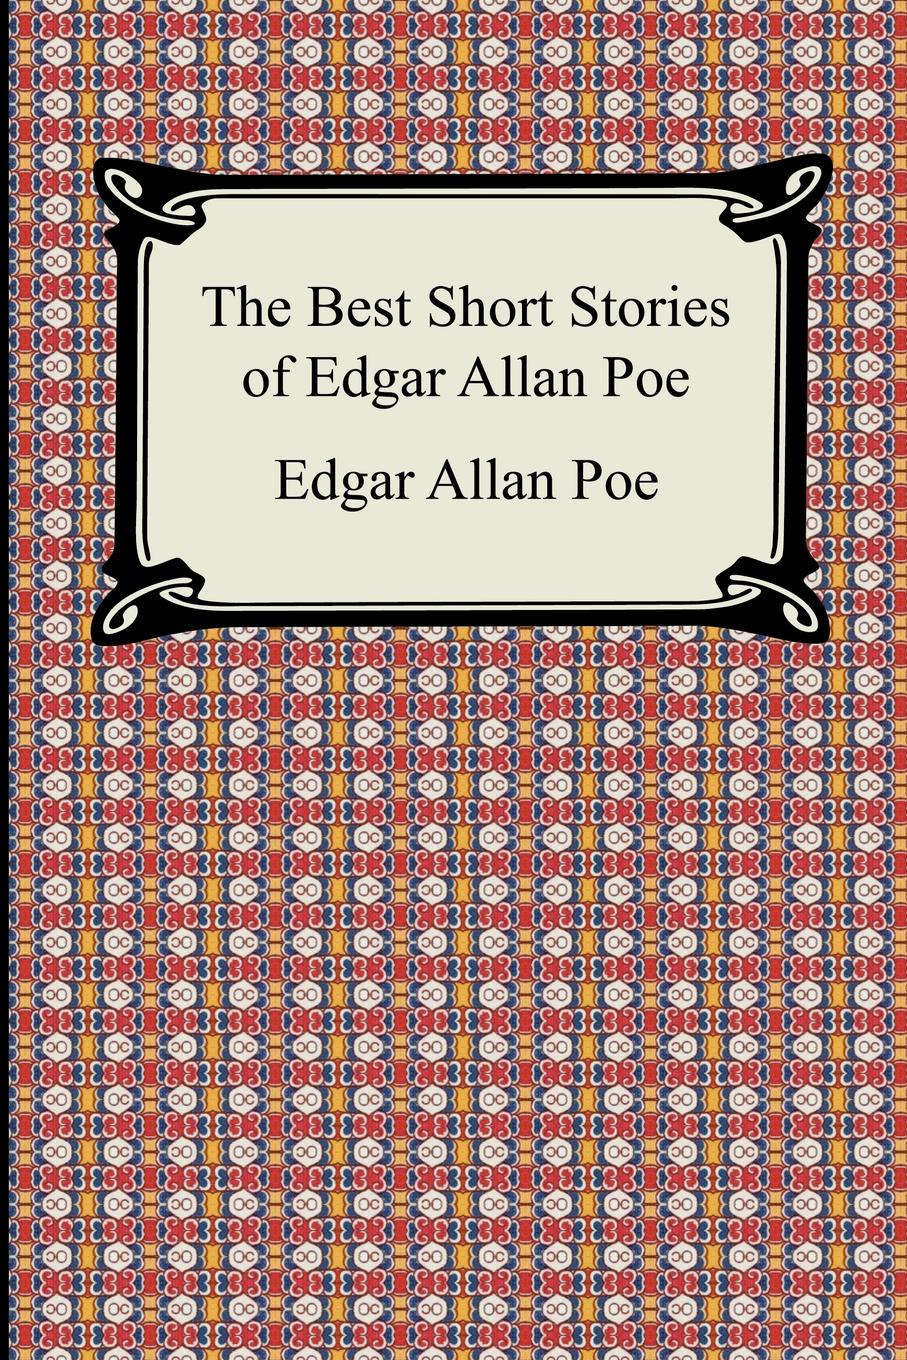 купить Эдгар По The Best Short Stories of Edgar Allan Poe. (The Fall of the House of Usher, the Tell-Tale Heart and Other Tales) по цене 677 рублей